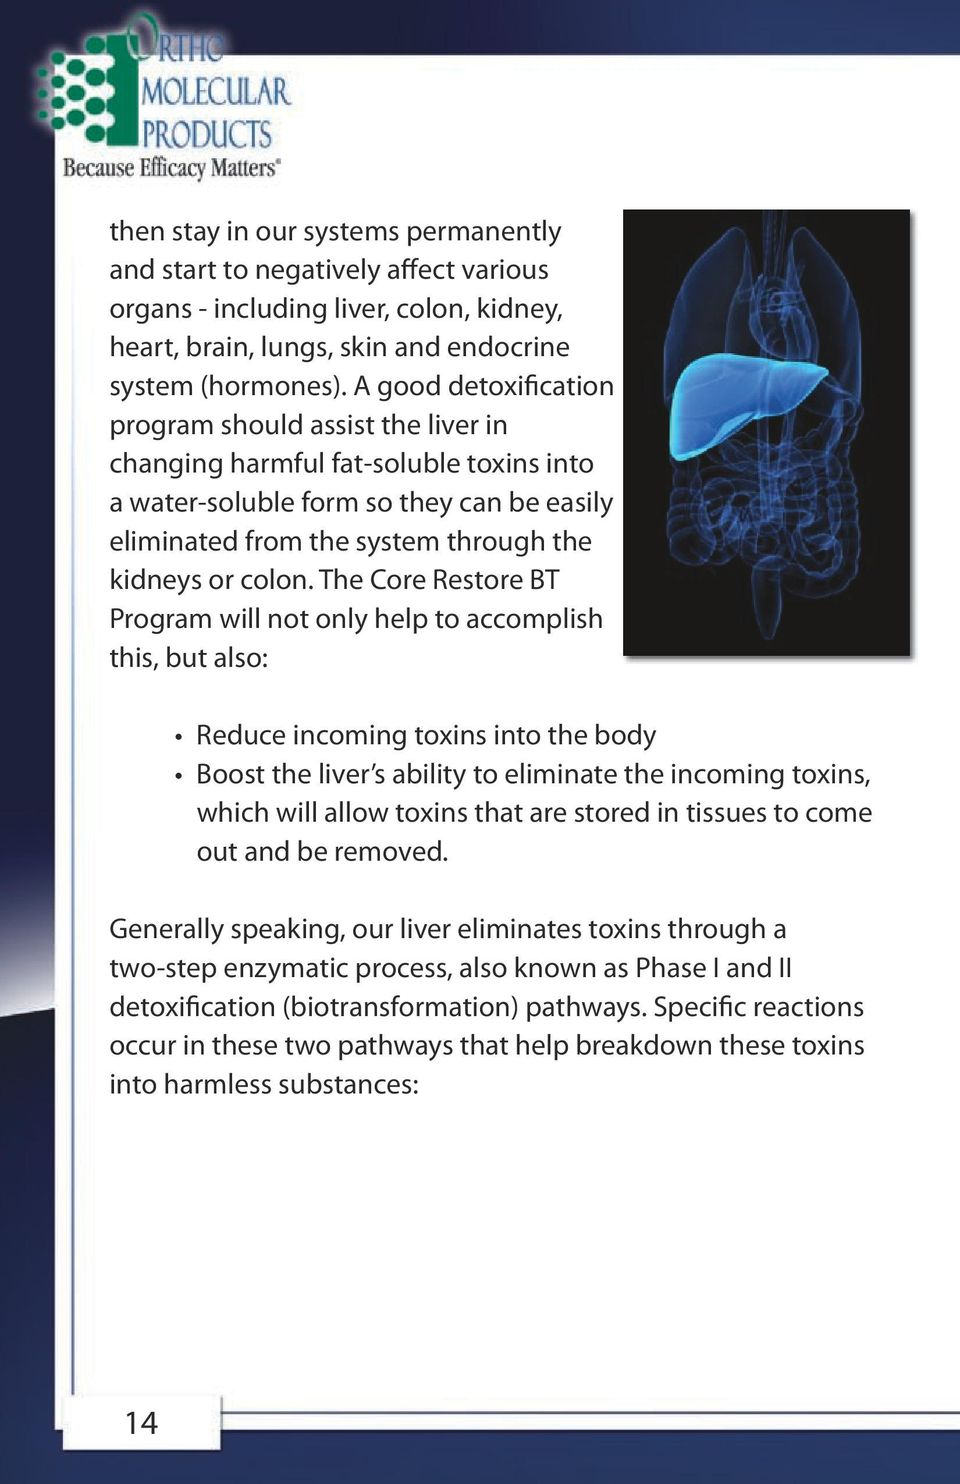 The Core Restore BT Program will not only help to accomplish this, but also: Reduce incoming toxins into the body Boost the liver s ability to eliminate the incoming toxins, which will allow toxins